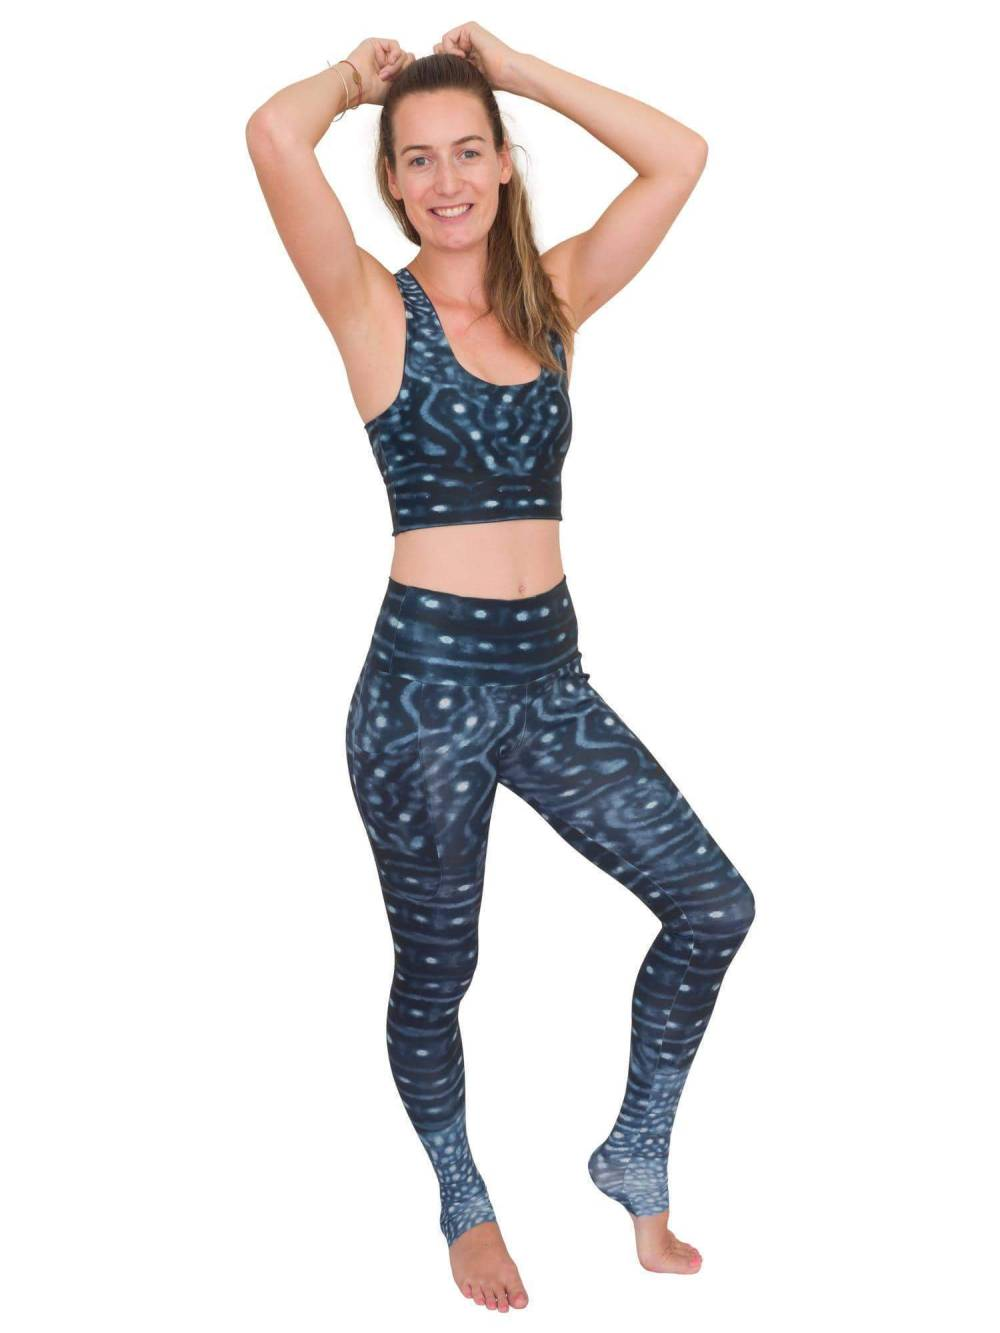 waterlust workout leggings with side pockets